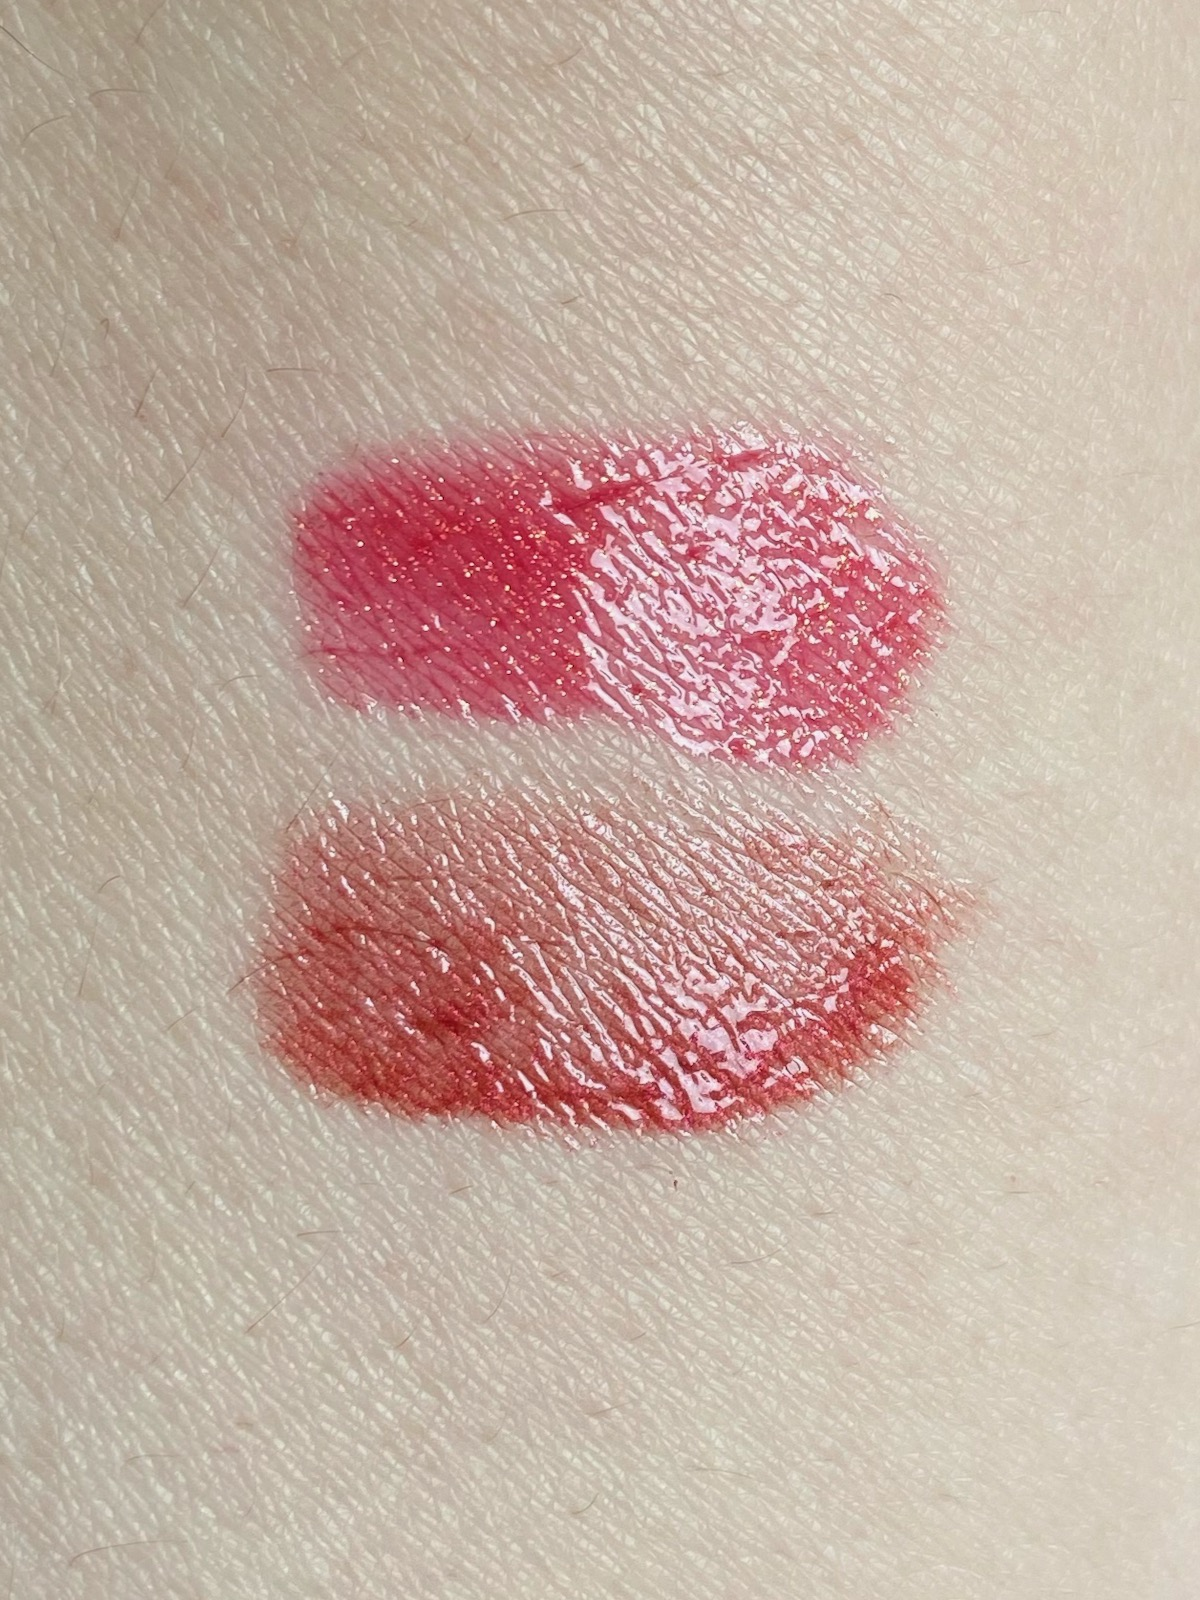 Clarins Lip Comfort Oil Shimmer Swatch 07 red hot 08 burgundy wine